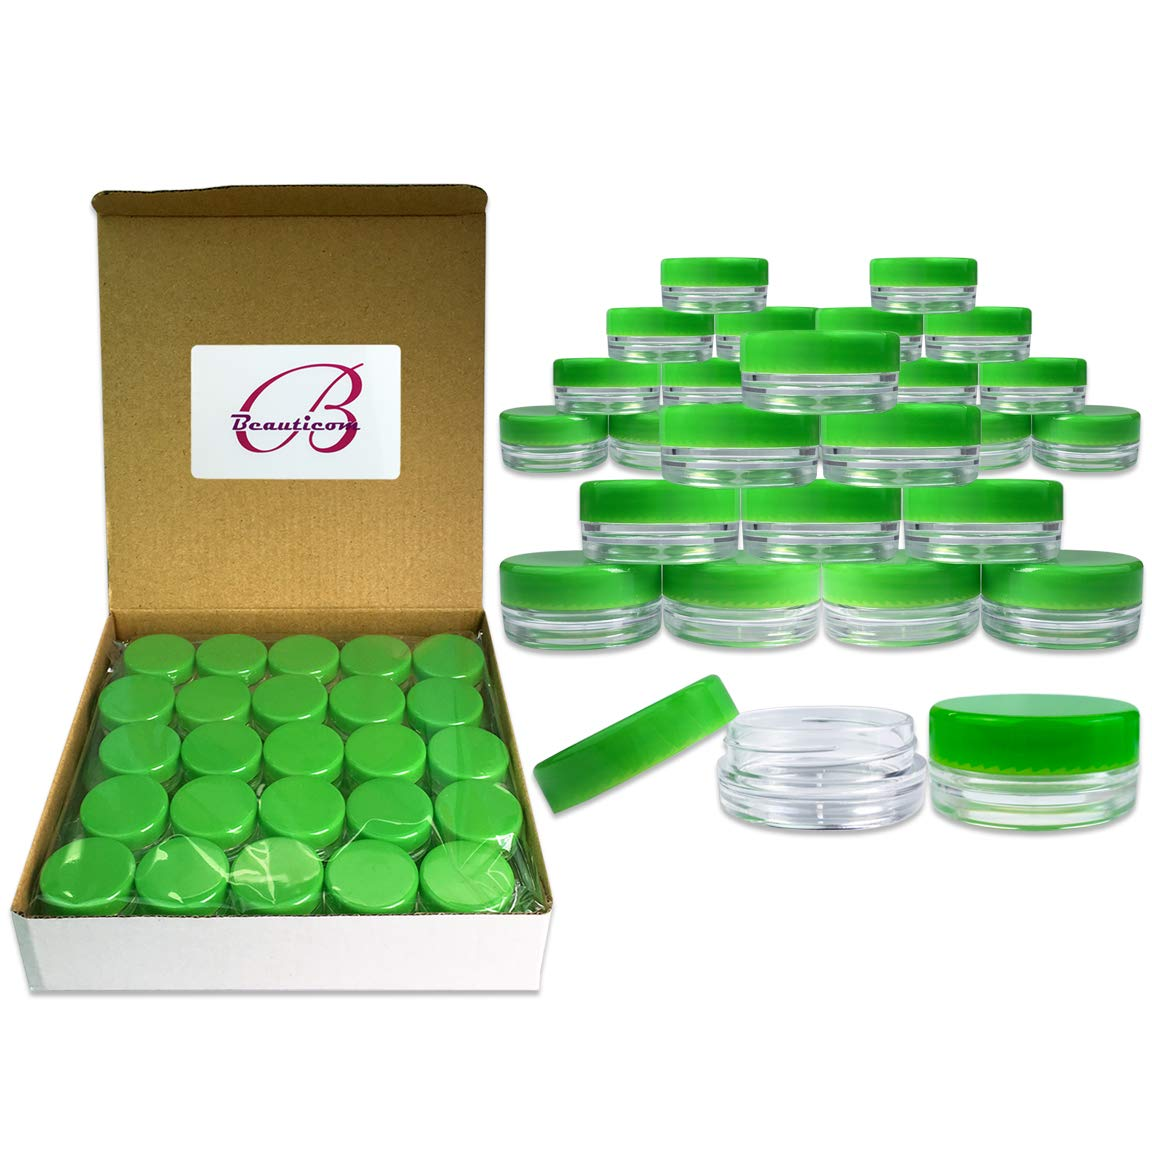 Quantity 100 Pieces Beauticom 3G 3ML Round Clear Jars with GREEN Lids for Scrubs, Oils, Toner, Salves, Creams, Lotions, Makeup Samples, Lip Balms – BPA Free